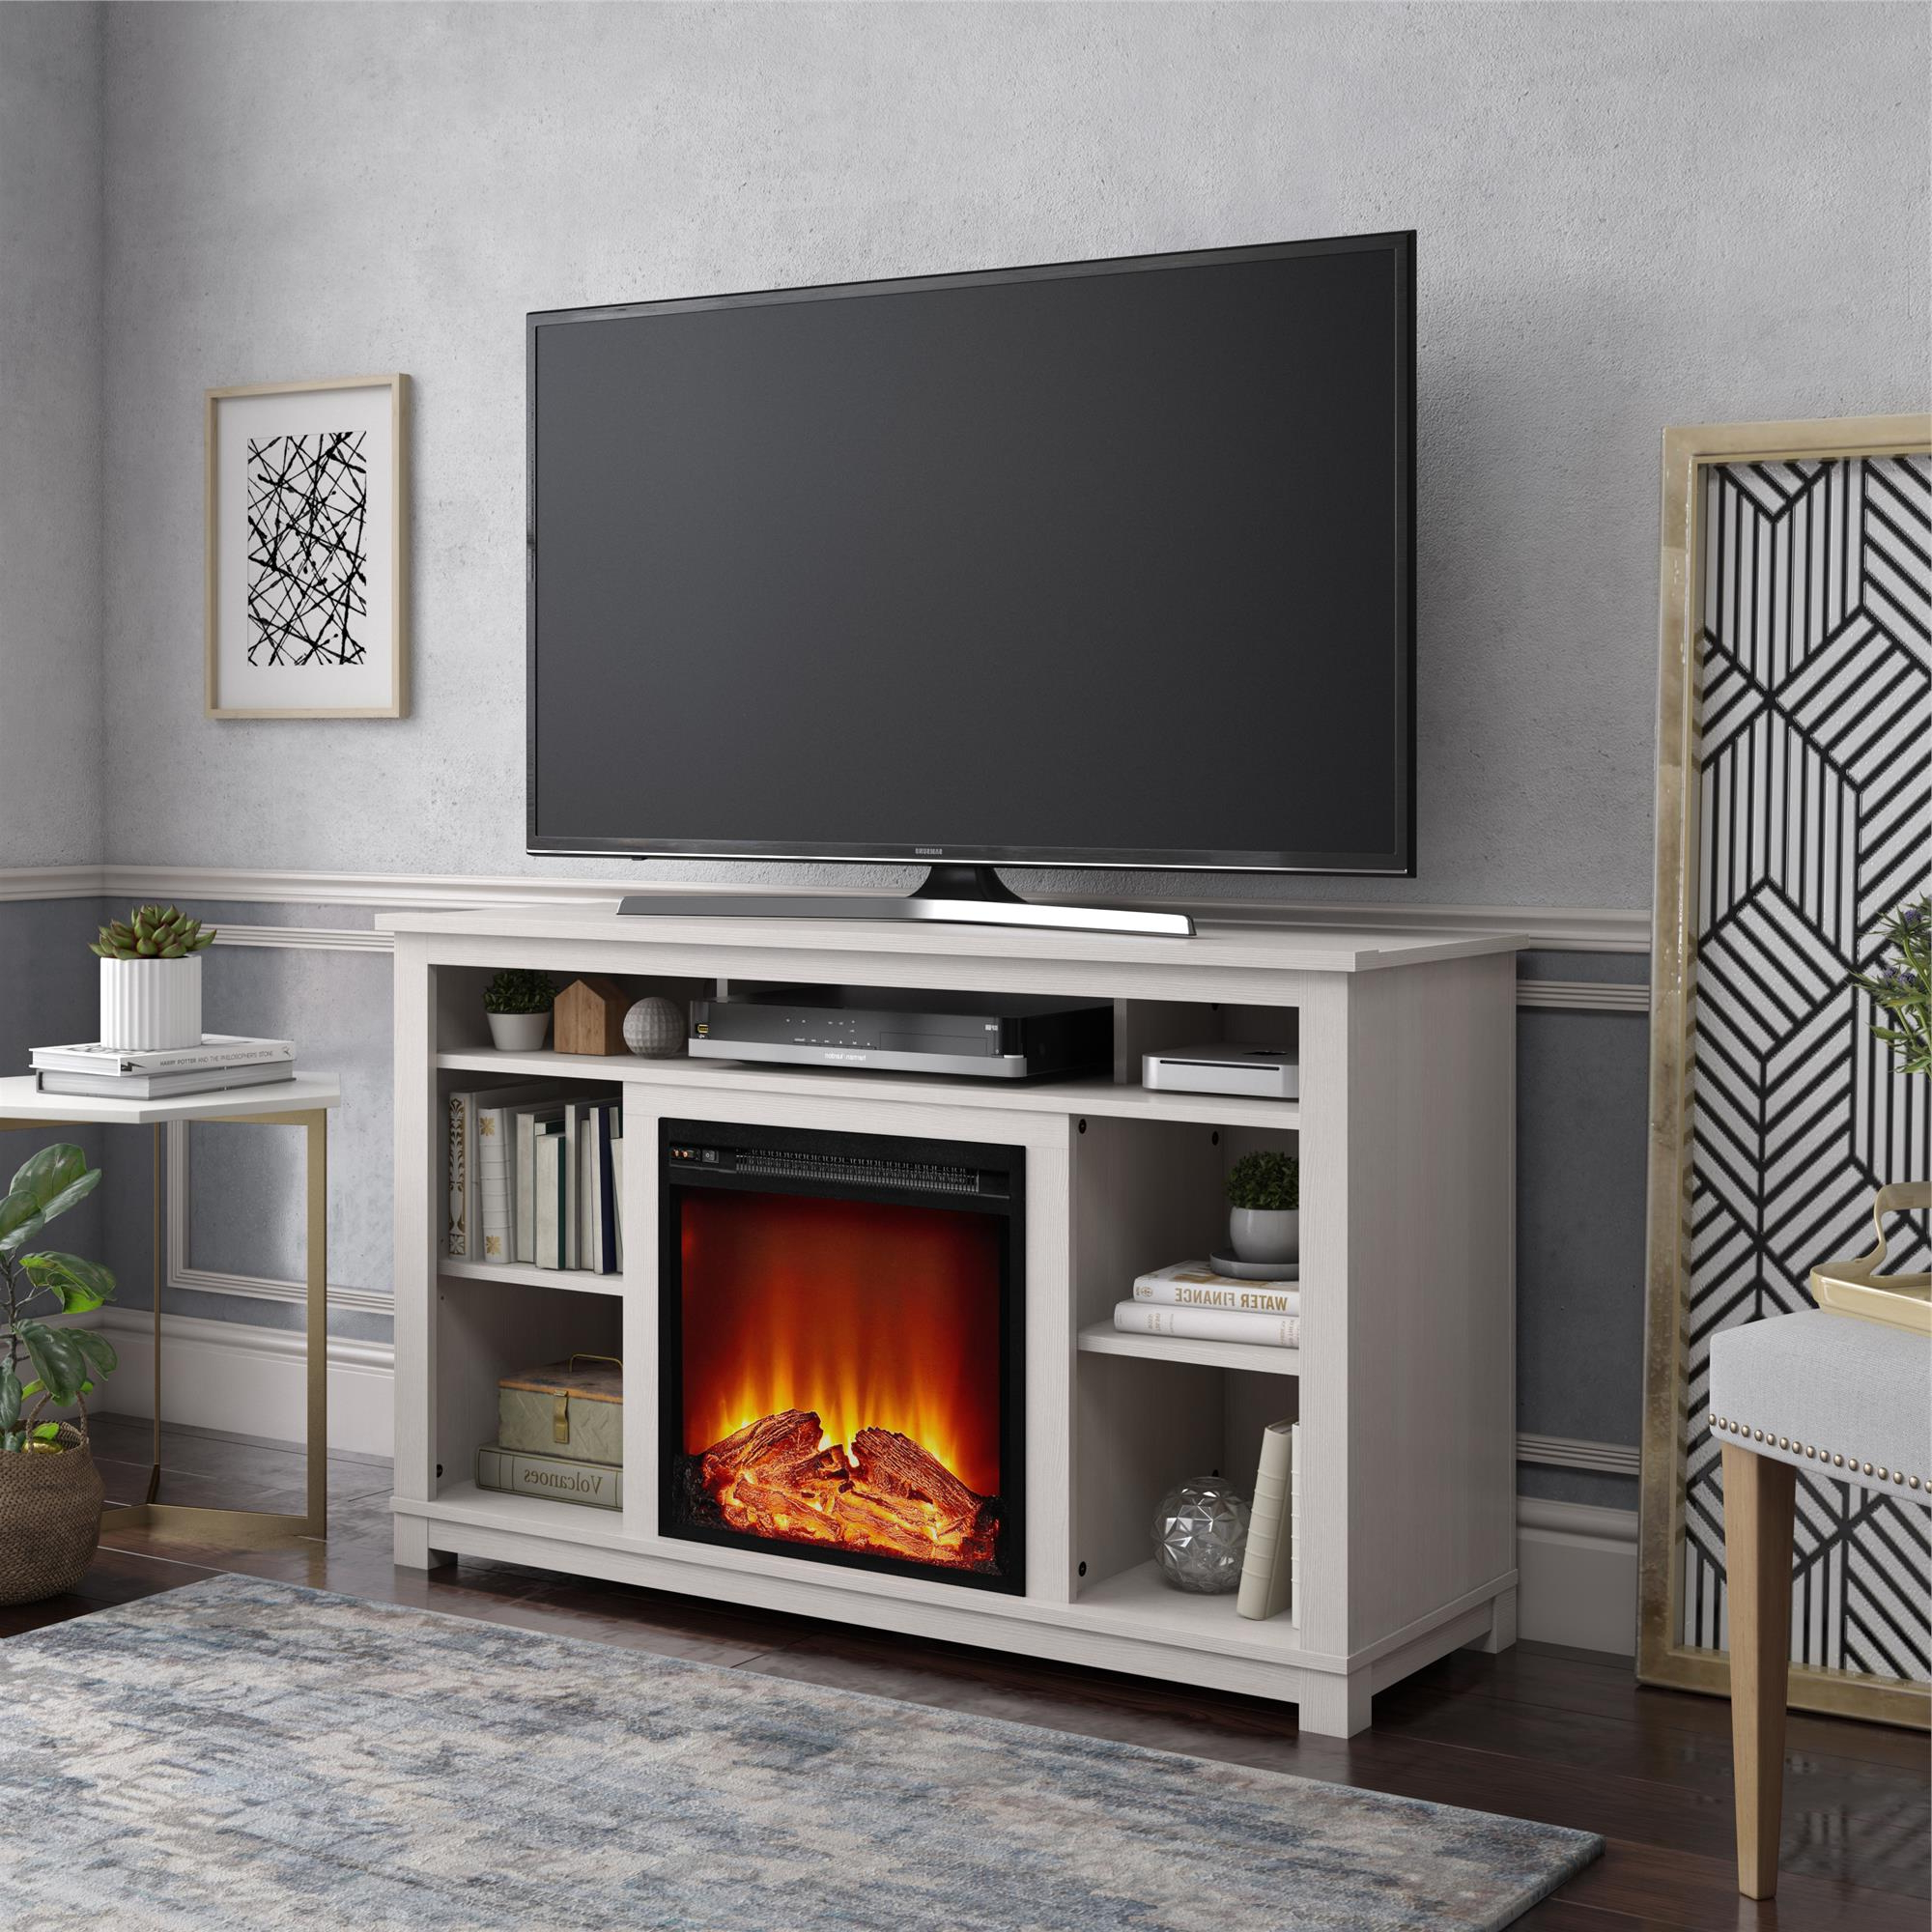 """Favorite Ameriwood Home Edgewood Fireplace Tv Stand For Tvs Up To Throughout Twila Tv Stands For Tvs Up To 55"""" (View 12 of 25)"""